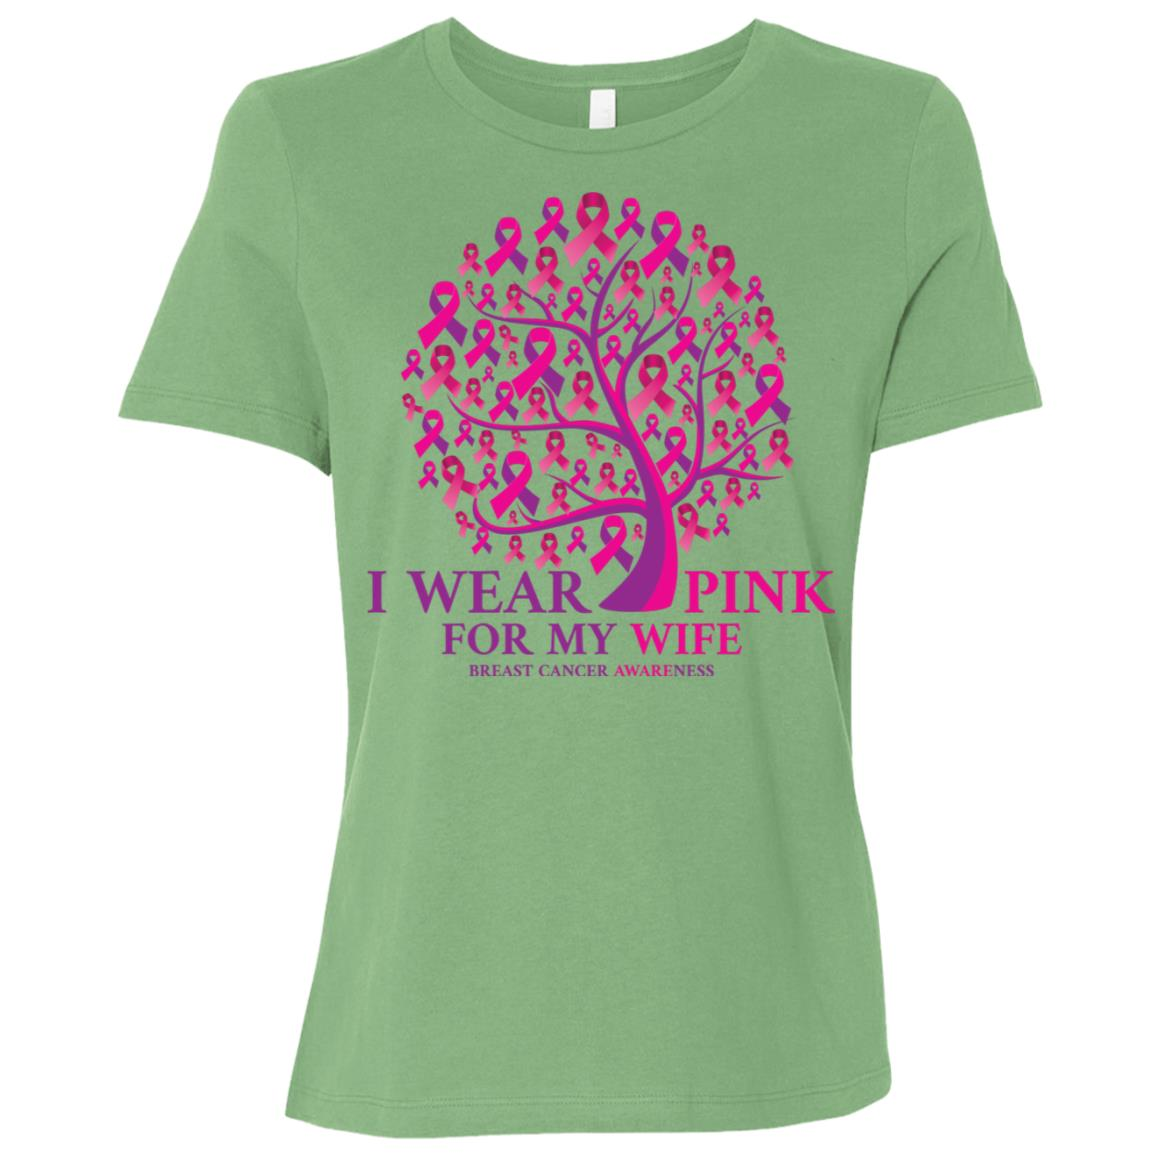 I Wear Pink For My Wife Breast Cancer Awareness-1 Women Short Sleeve T-Shirt